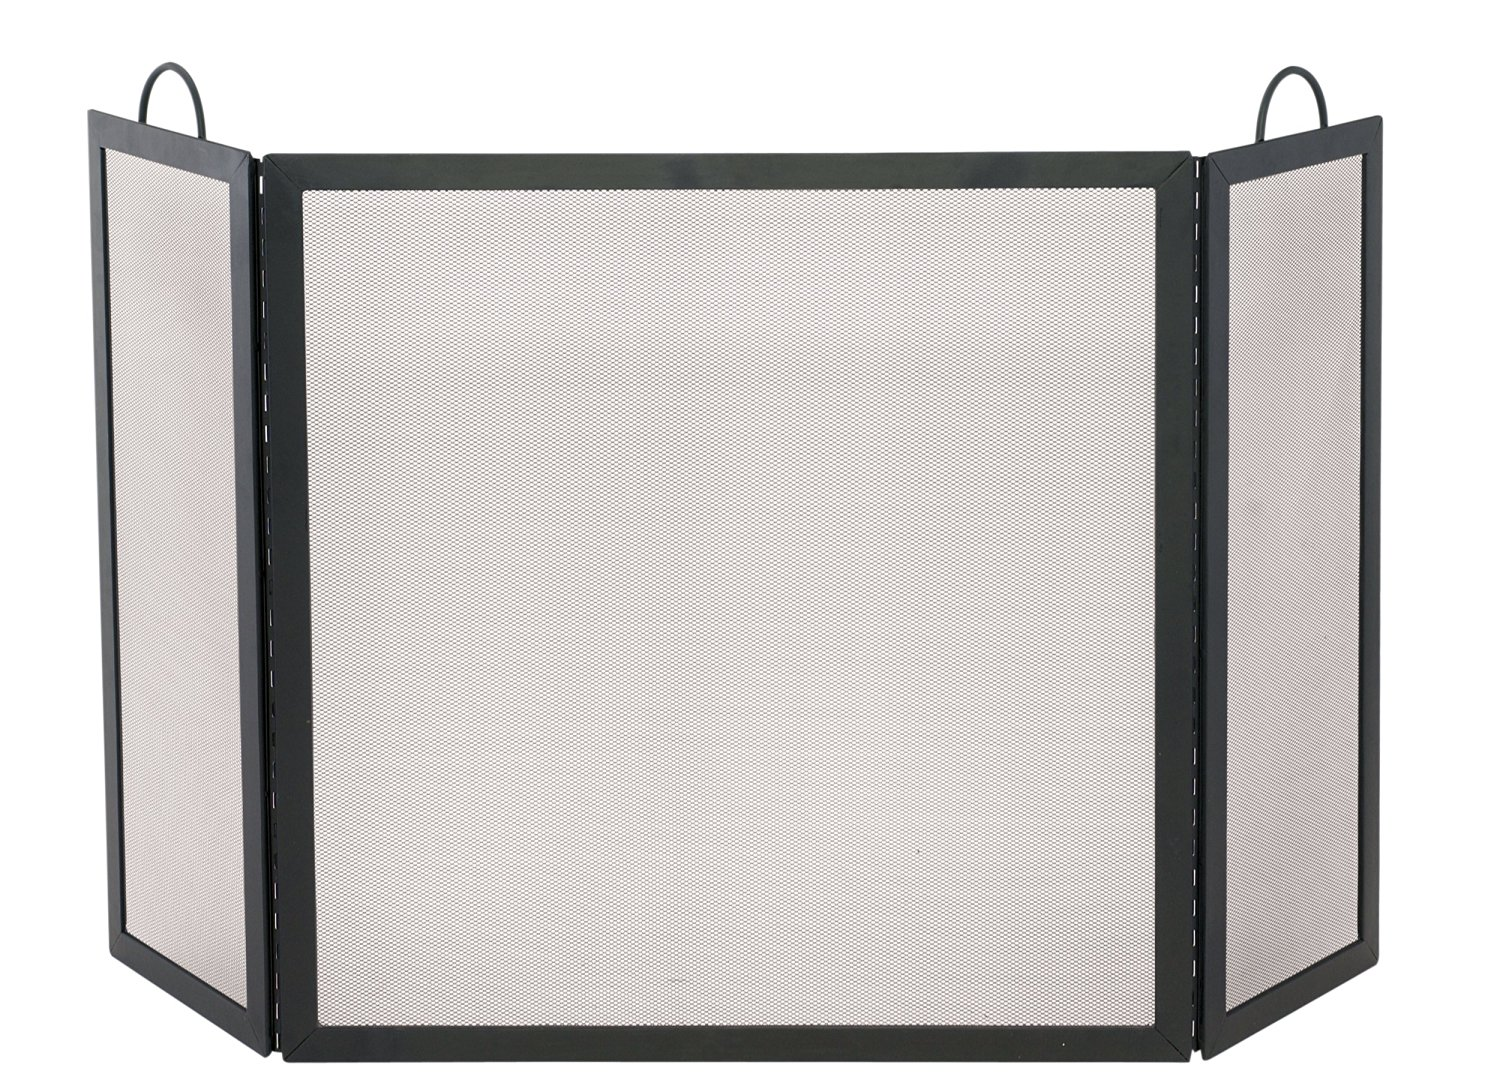 Uniflame S-1504 3 Fold Black Wrought Iron Medium Screen